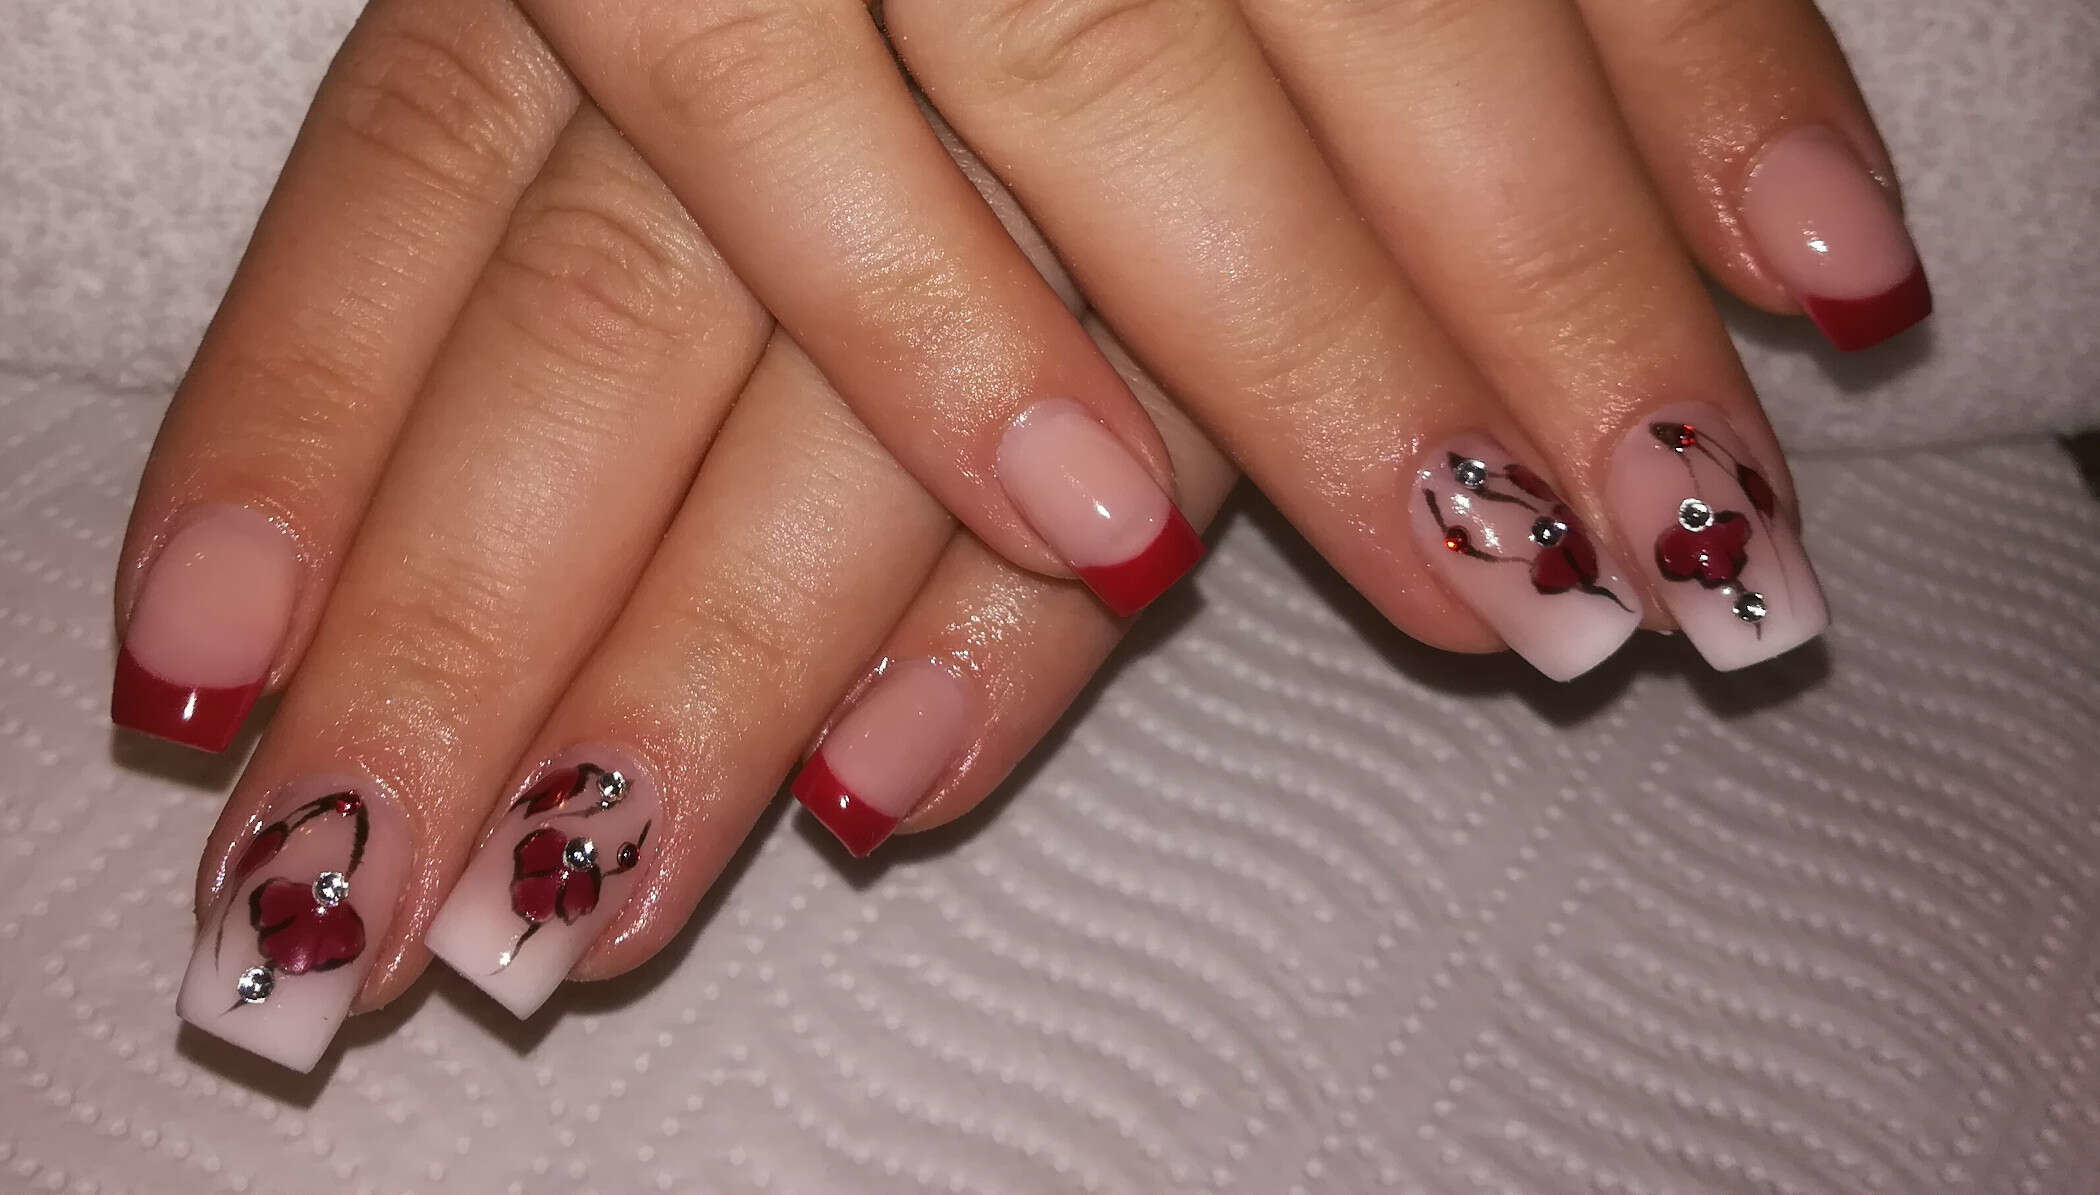 farbenfrohe French-Nails von Melinda's Nails